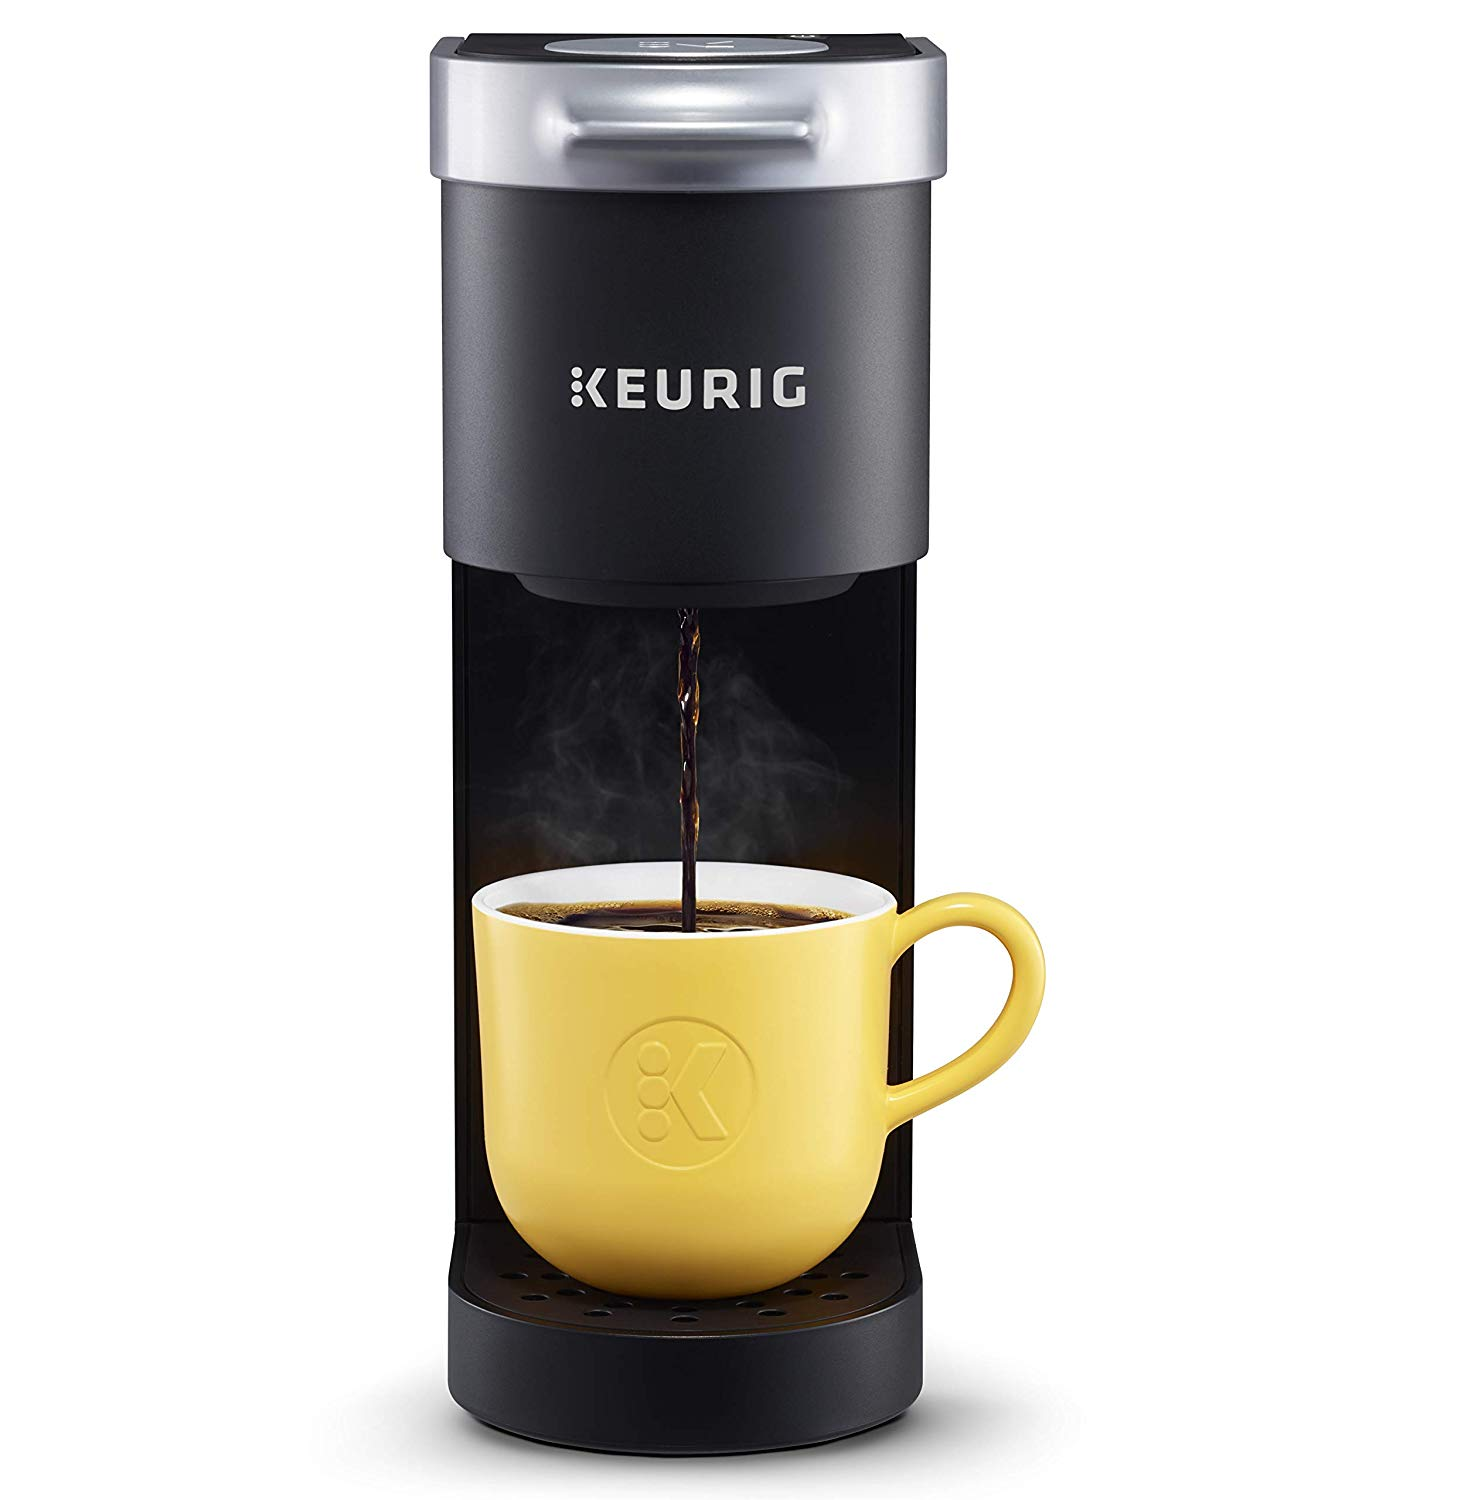 Keurig KMini Single Serve Coffee Maker, Black